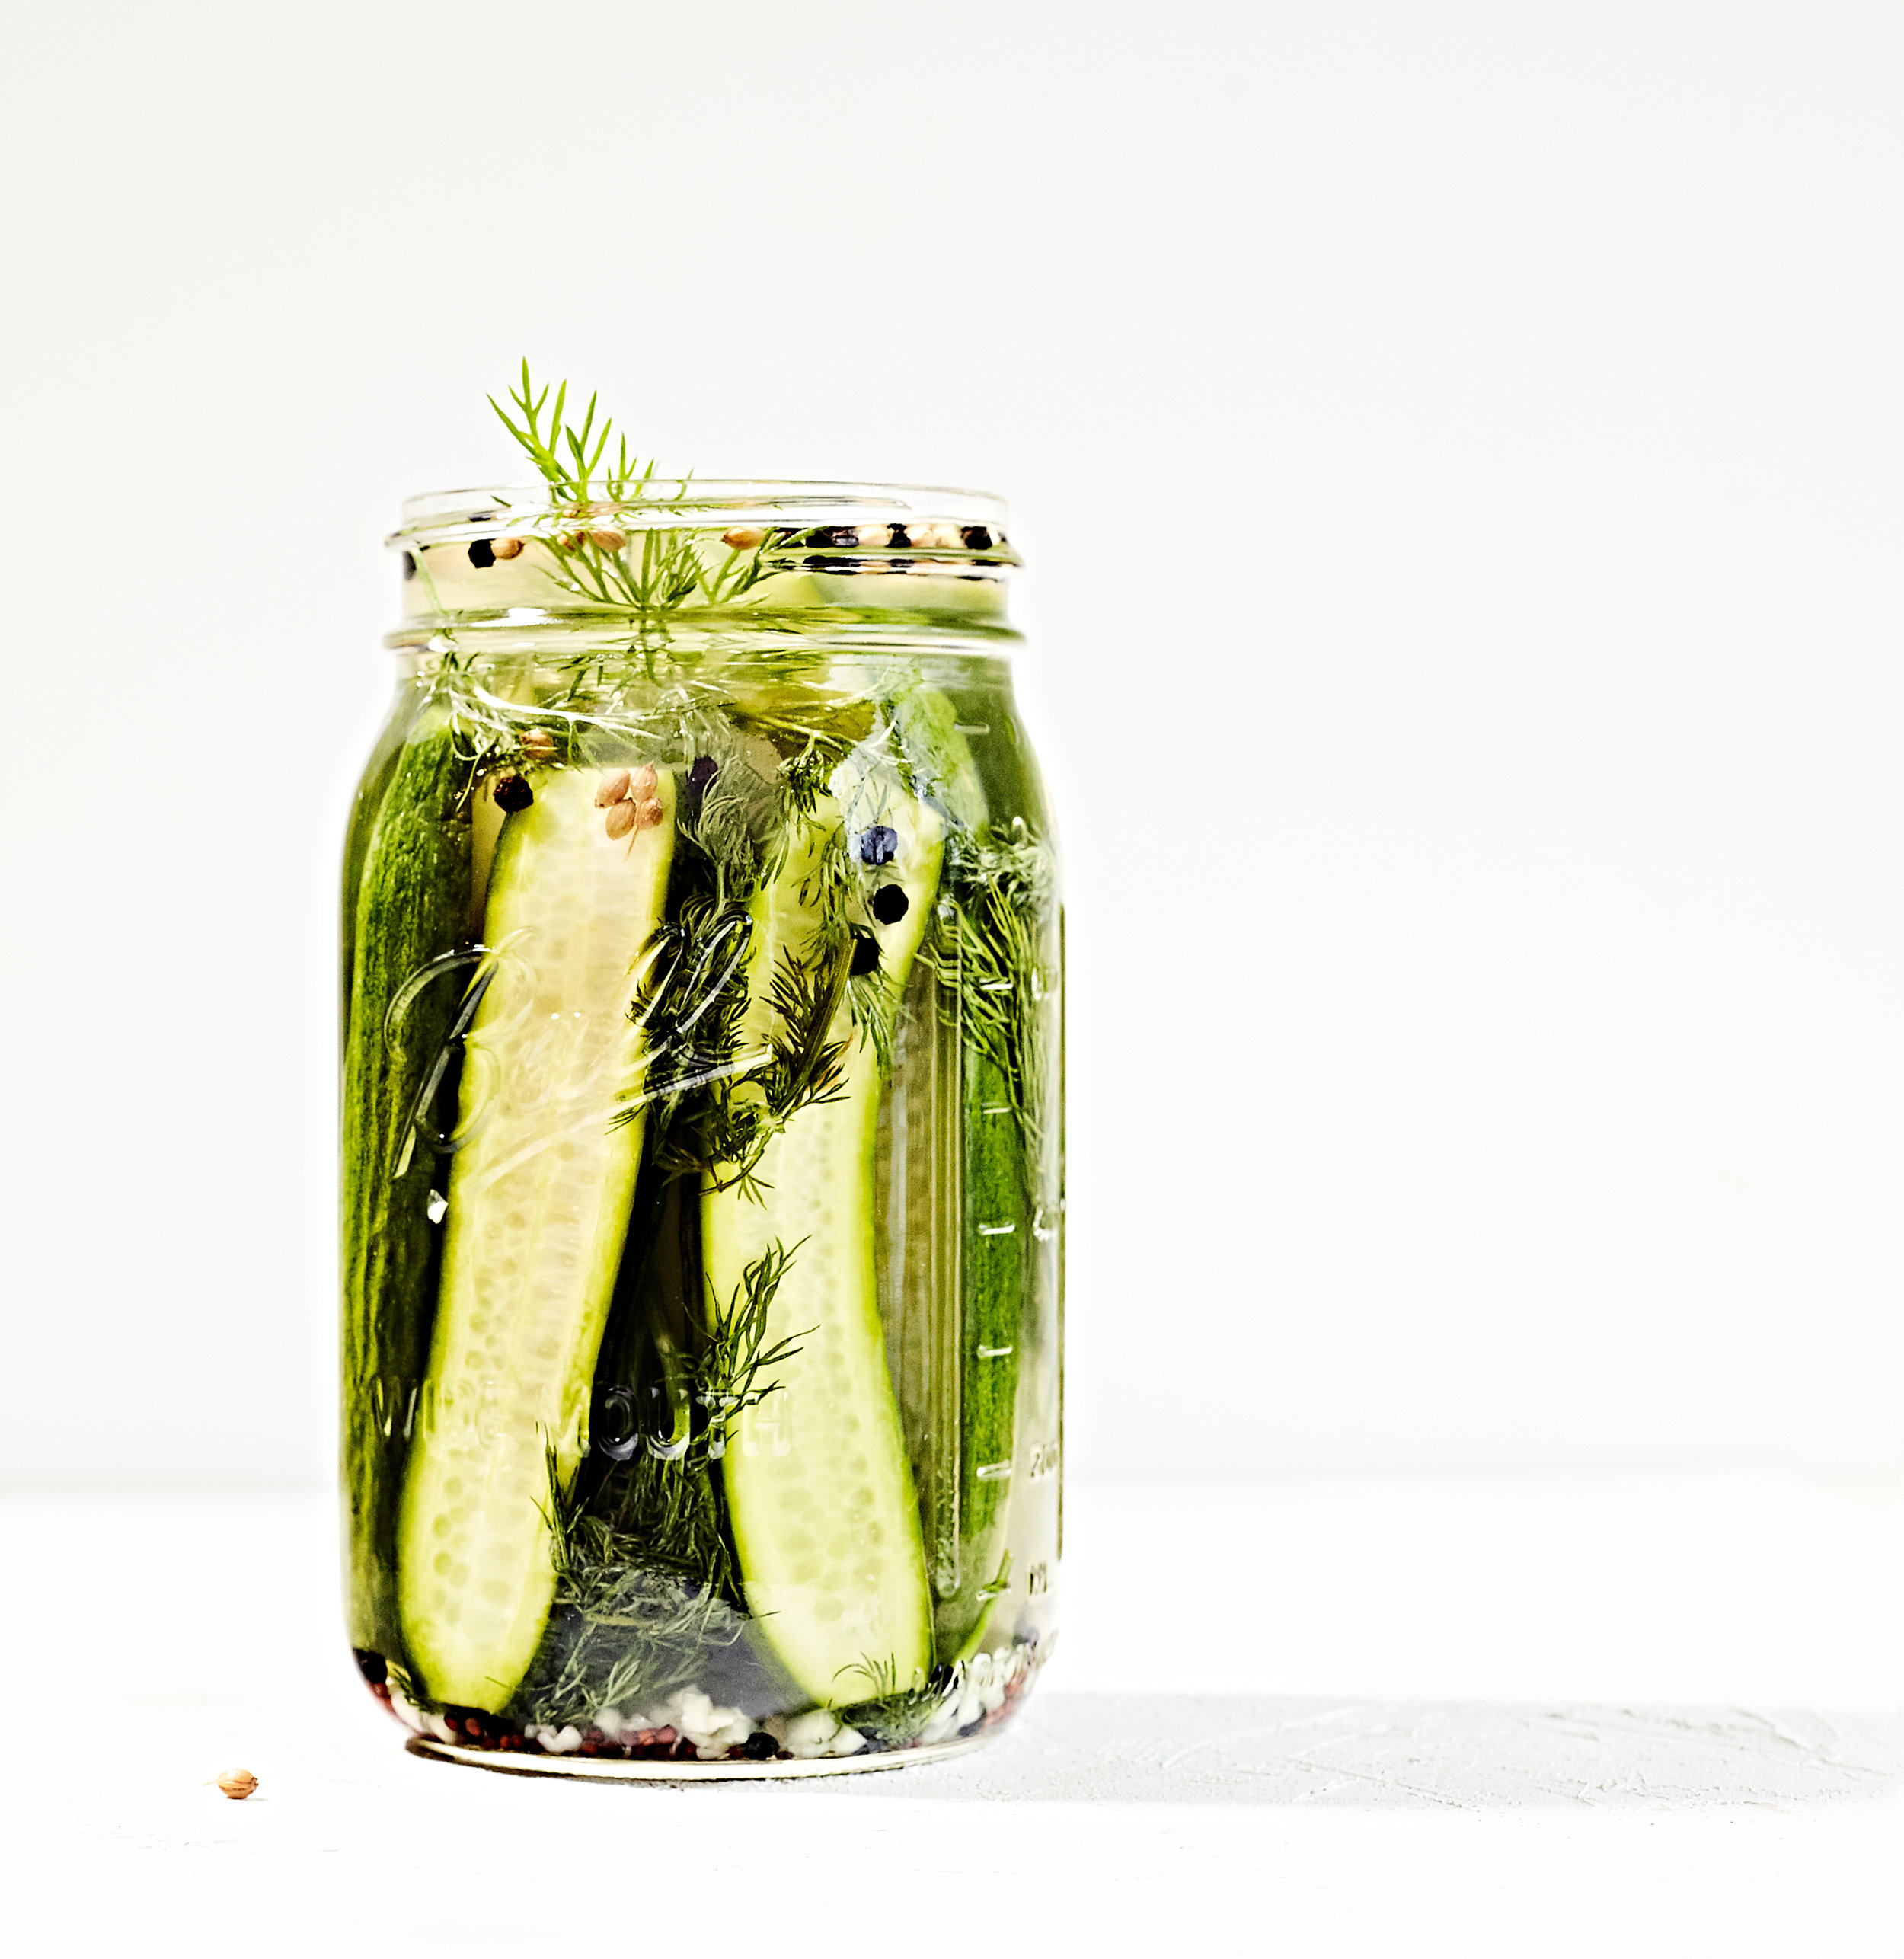 Quick refrigerator dill pickles in a jar